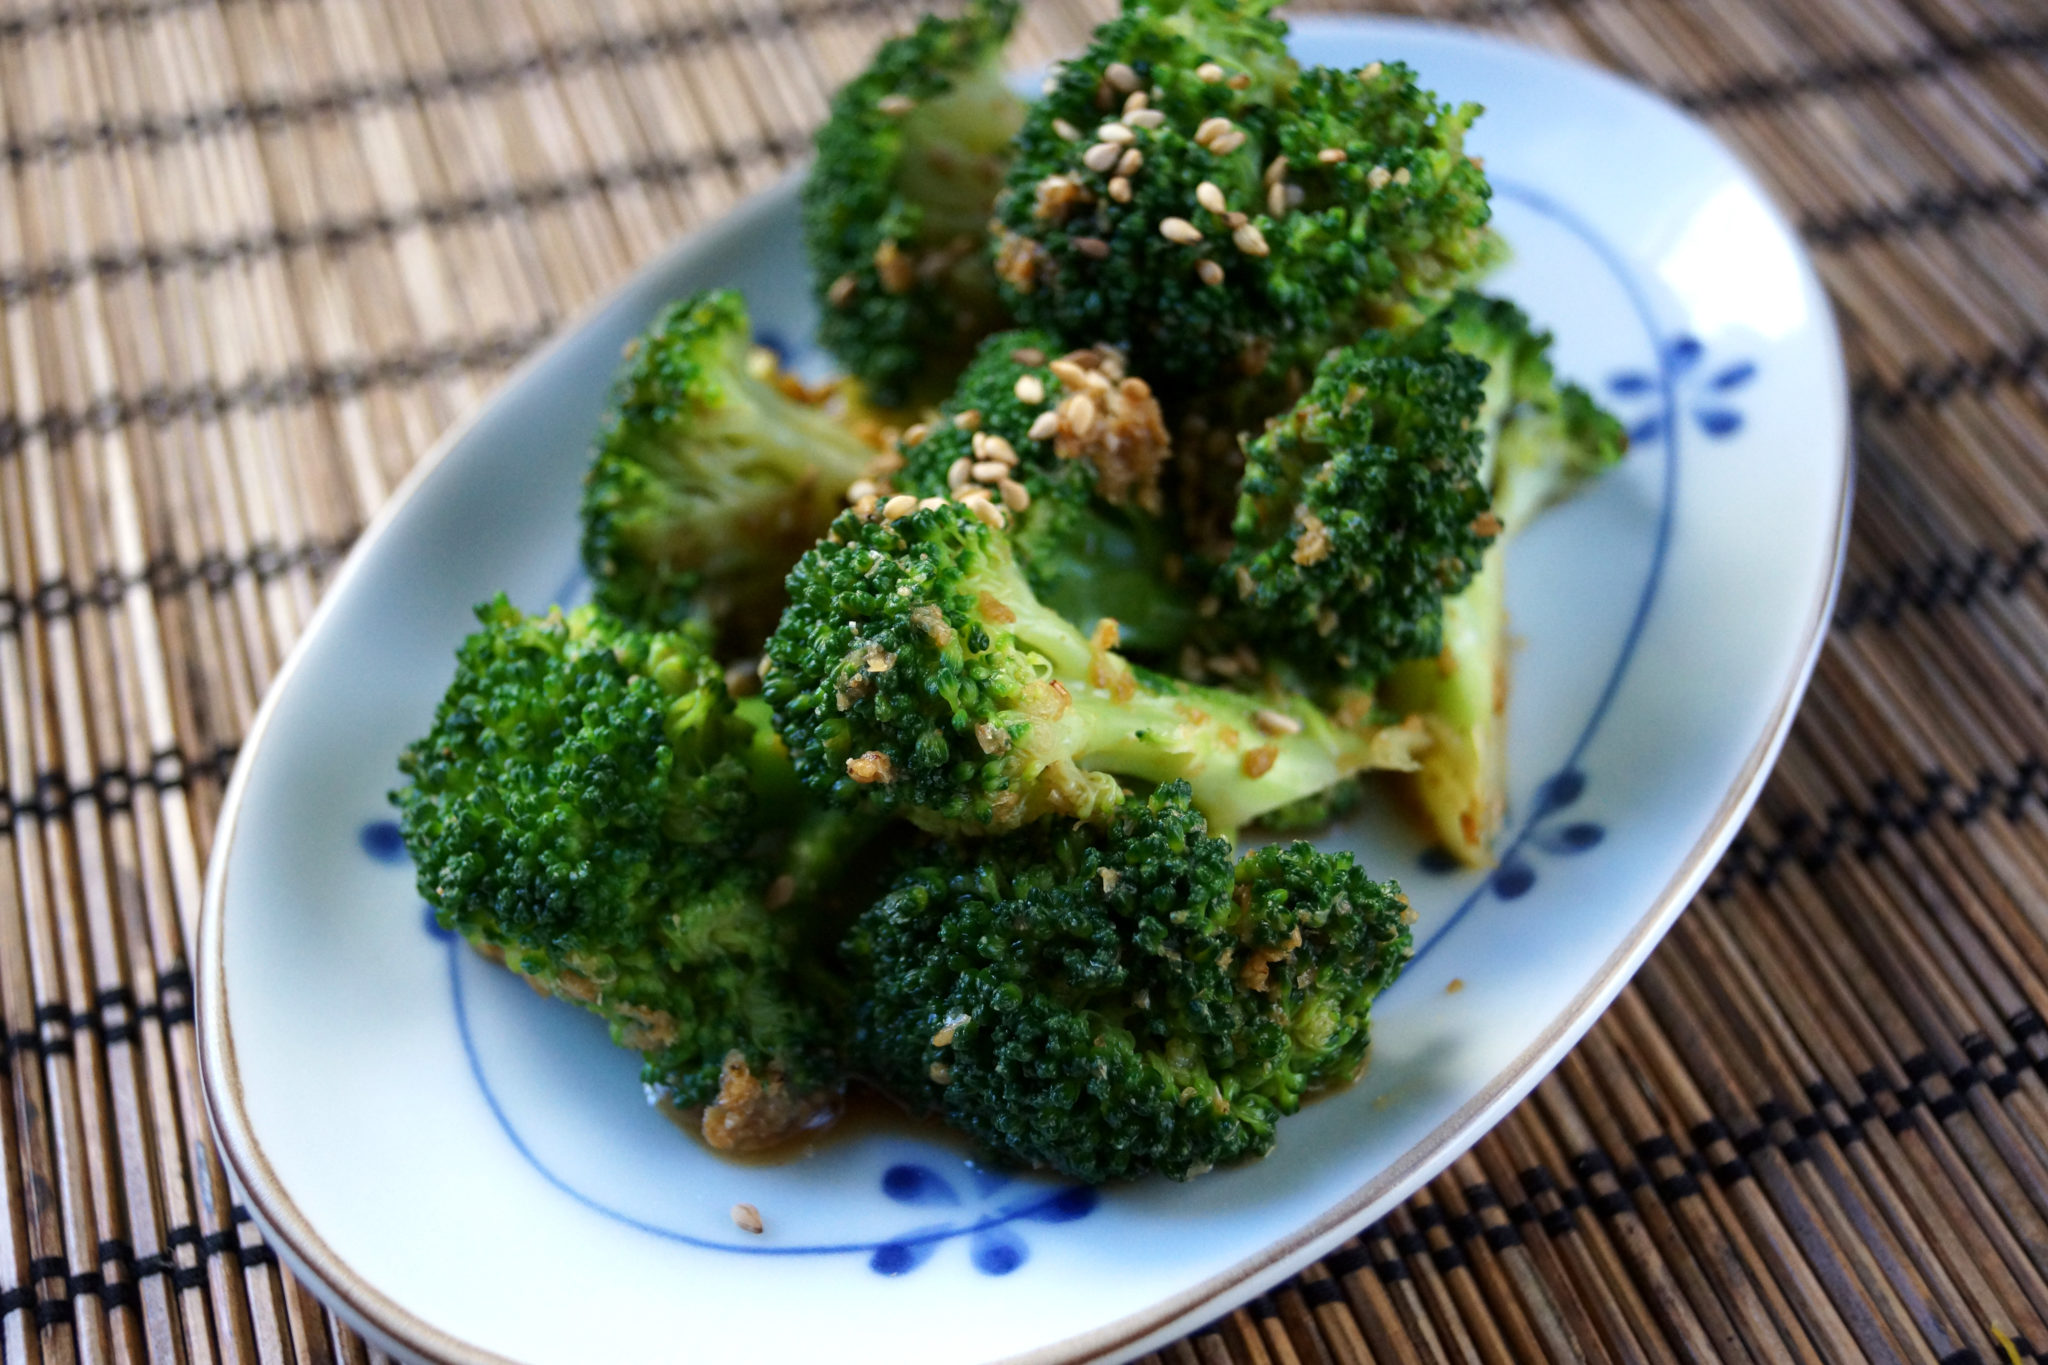 Broccoli with Sesame Sauce